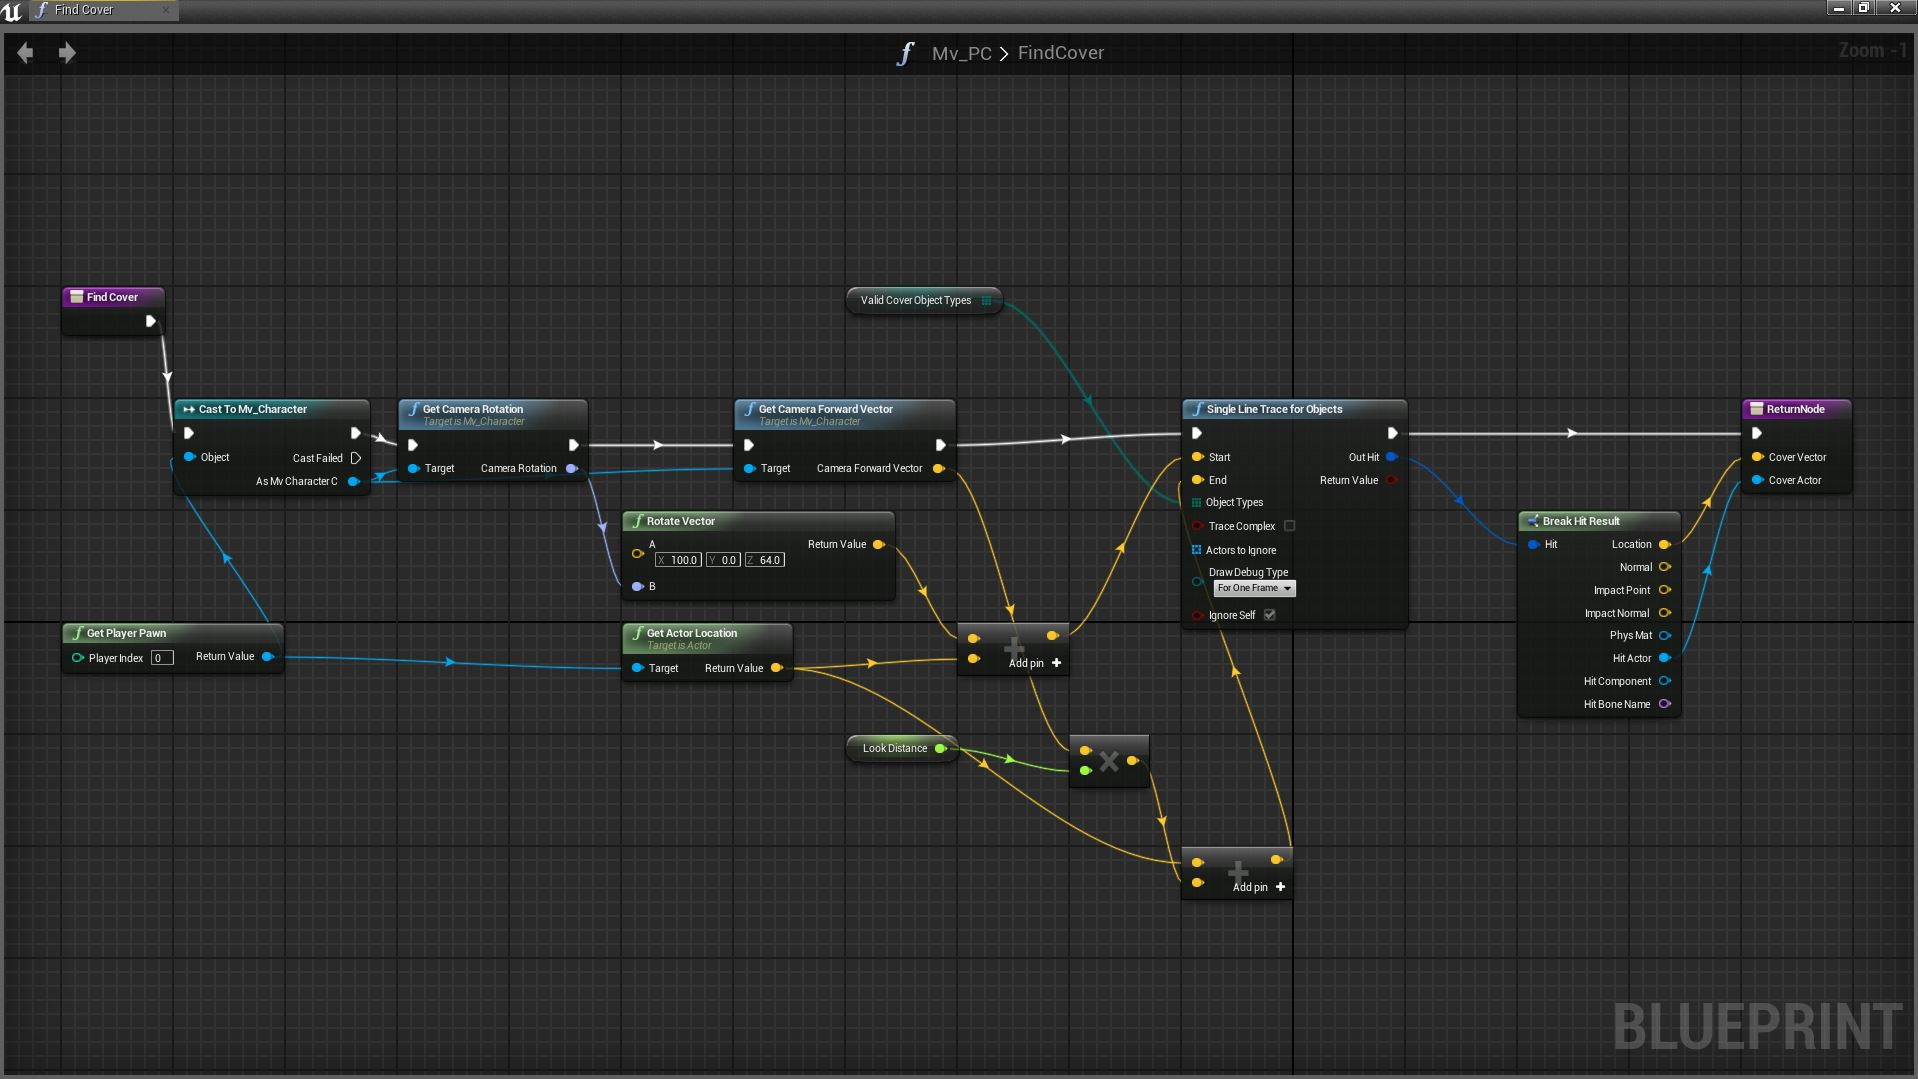 Any internal plans for visual scripting editor questions 20140731unreal enginefindcoverg1918x1079 222 kb 186693icfde277f4c25d1e9 malvernweather Gallery